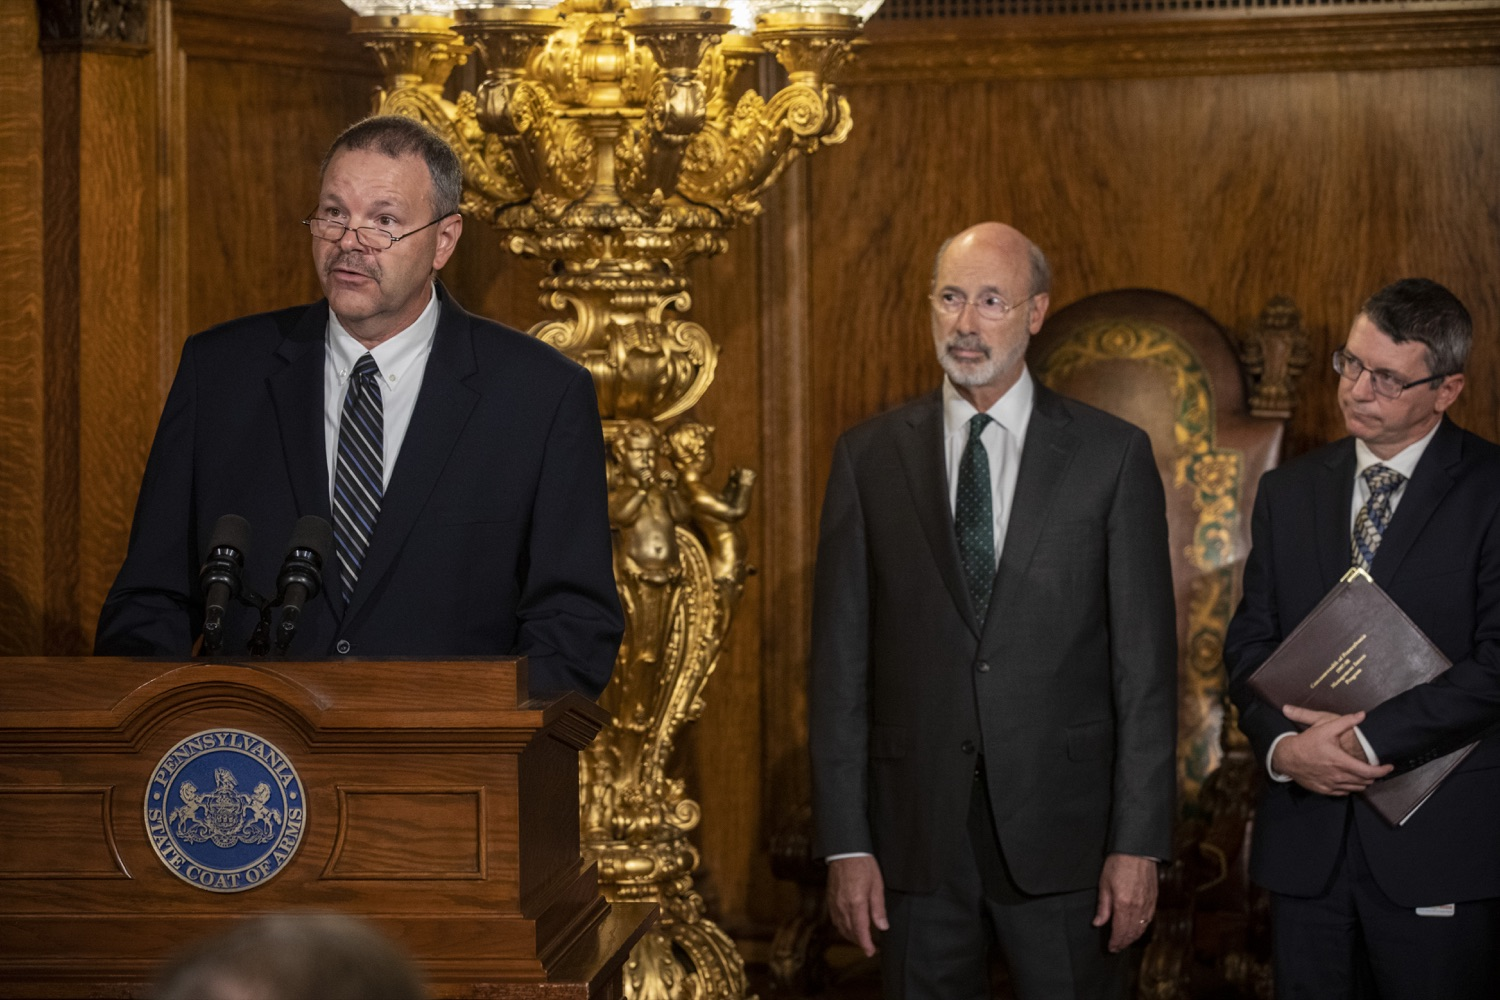 """<a href=""""http://filesource.abacast.com/commonwealthofpa/photo/17469_GOV_ClimateChange_DE_009.jpg"""" target=""""_blank"""">⇣Download Photo<br></a>Governor Wolf Takes Executive Action to Combat Climate Change, Carbon Emissions"""